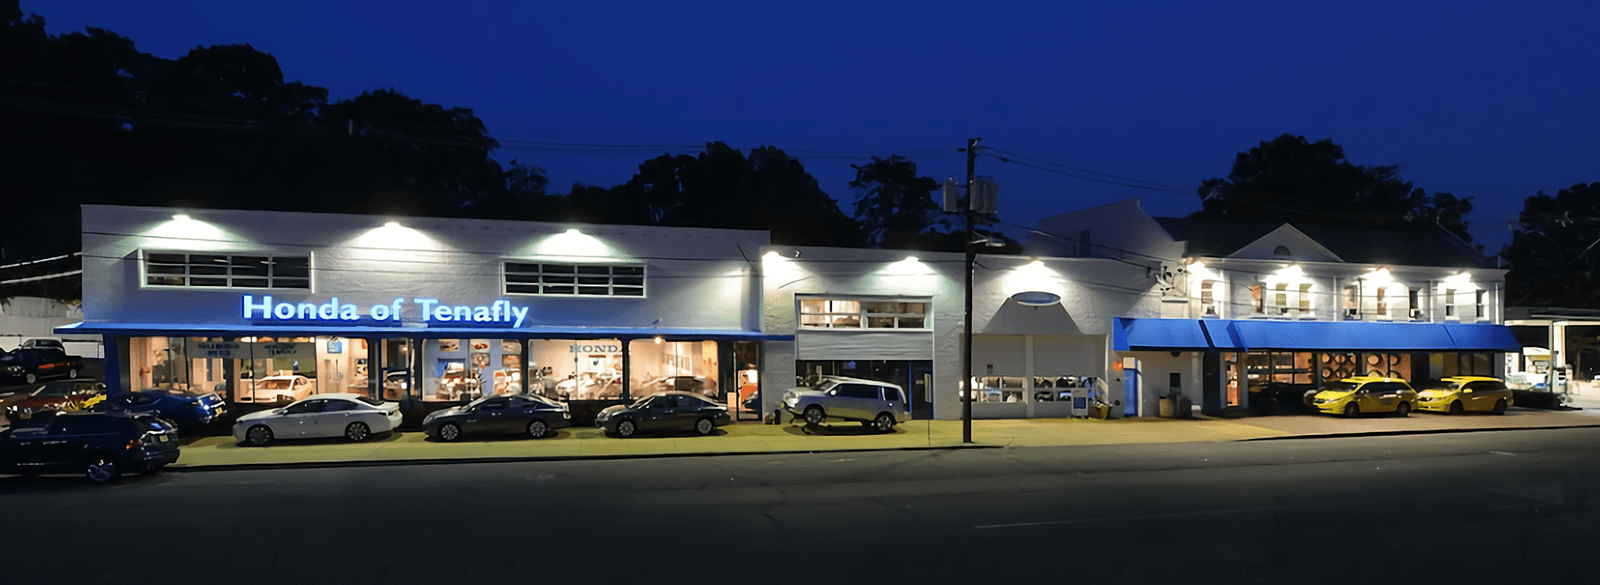 front of dealership at night